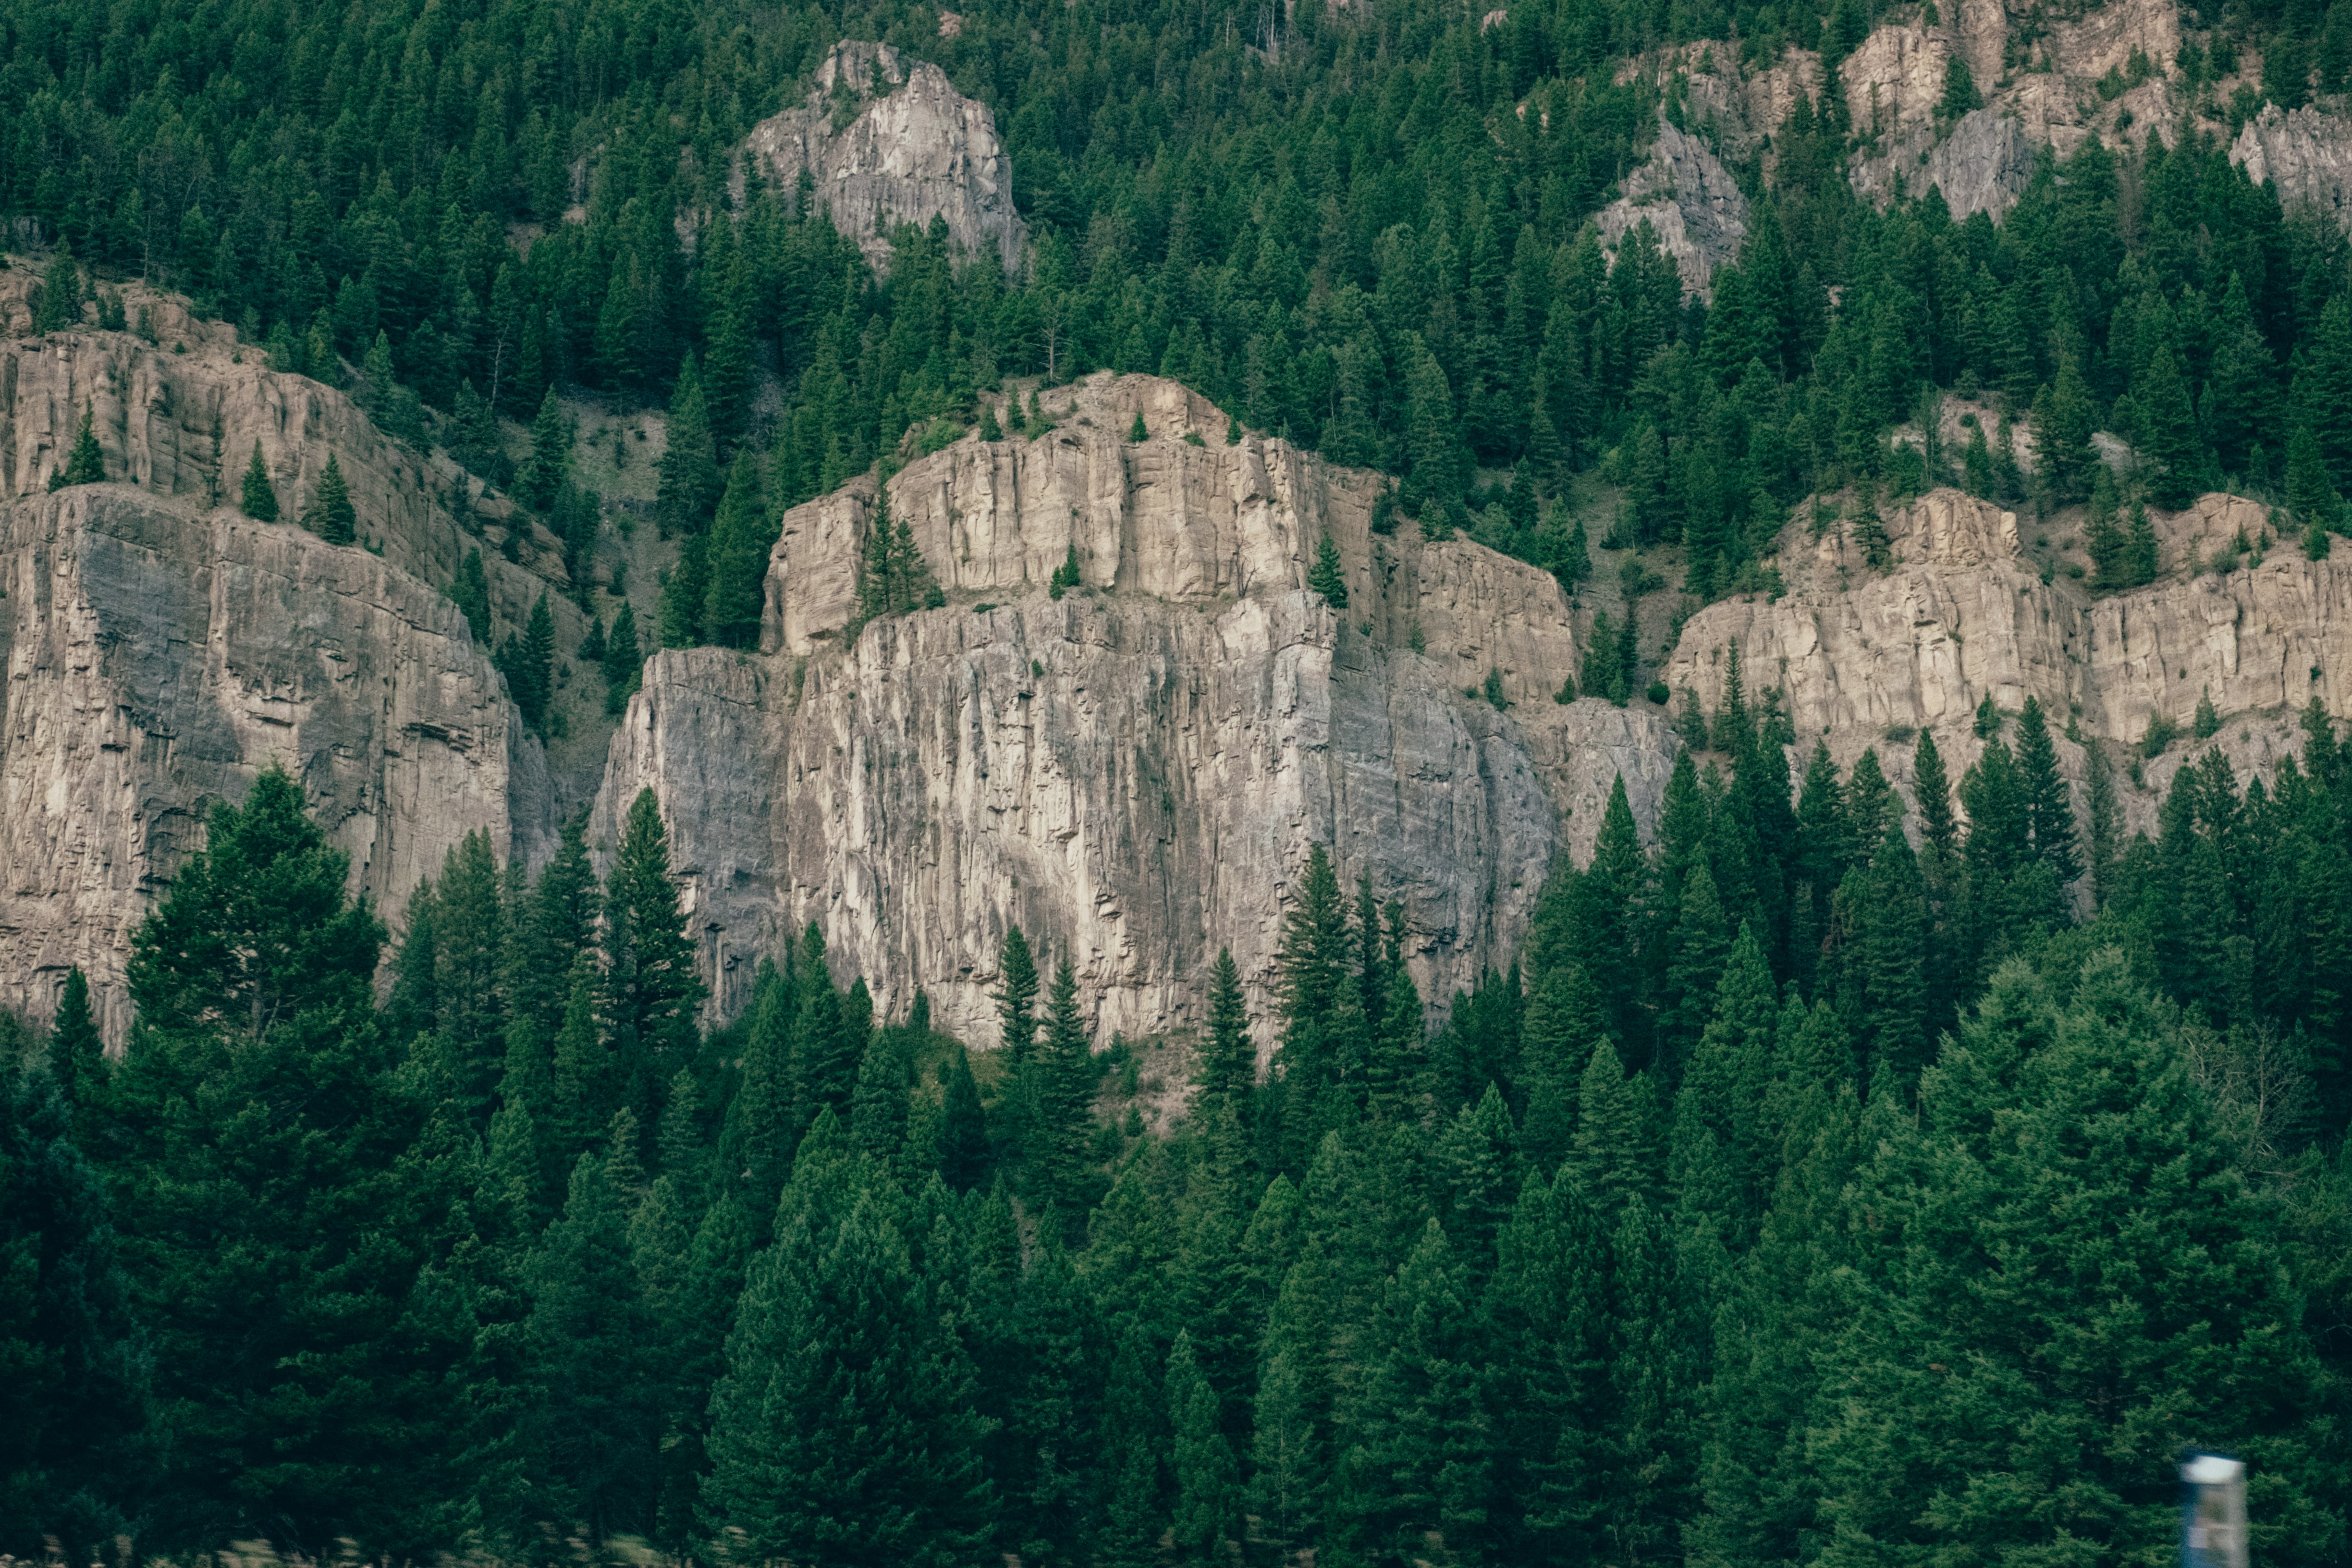 Coniferous trees on jagged rock faces and below them